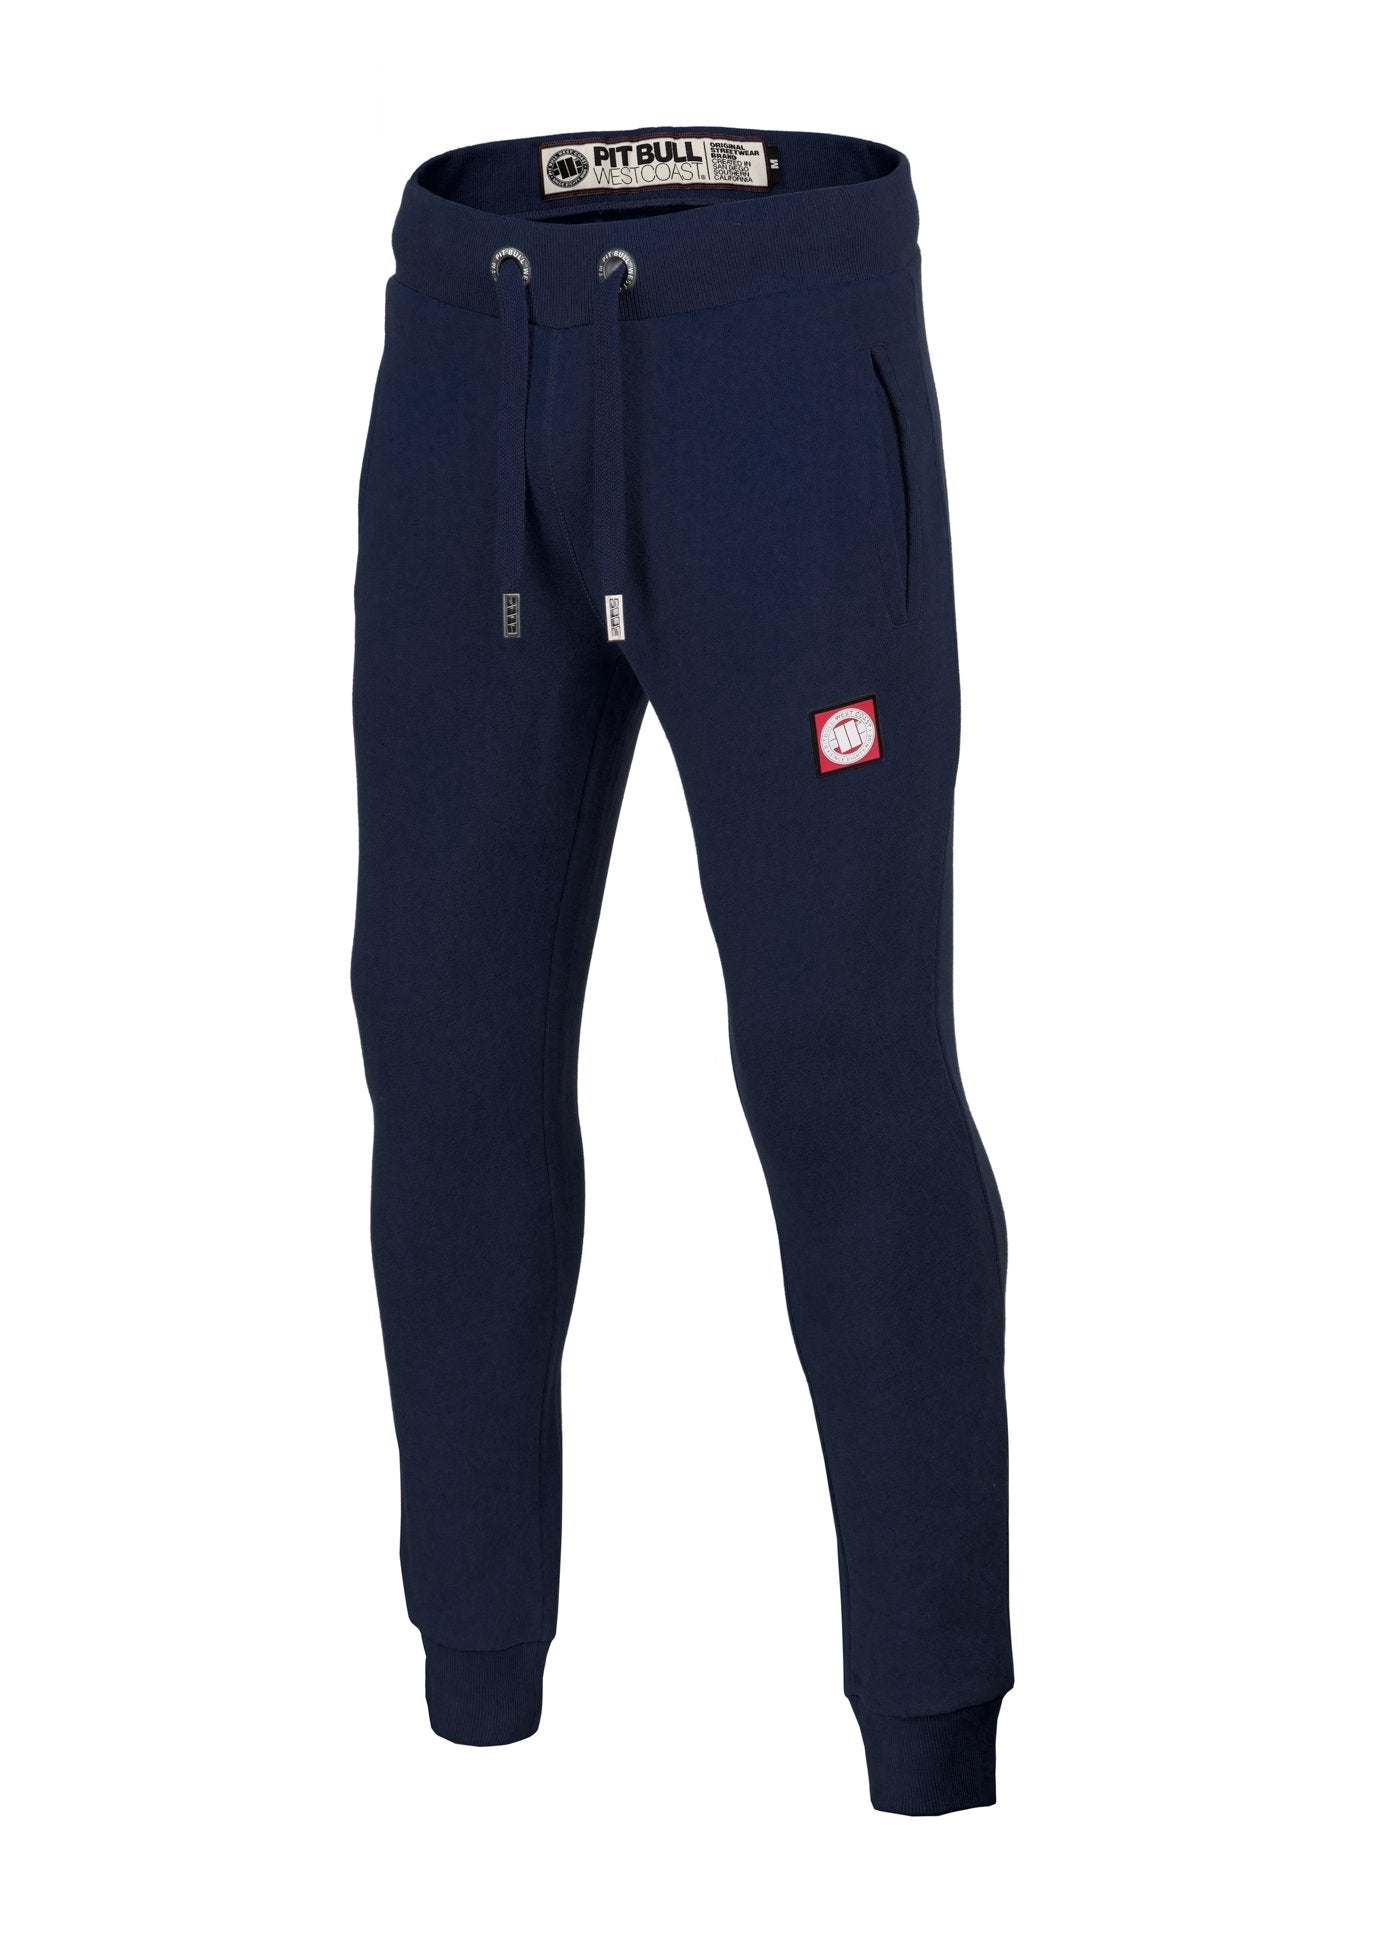 TRACK PANTS MOSS HILLTOP DARK NAVY - pitbullwestcoast